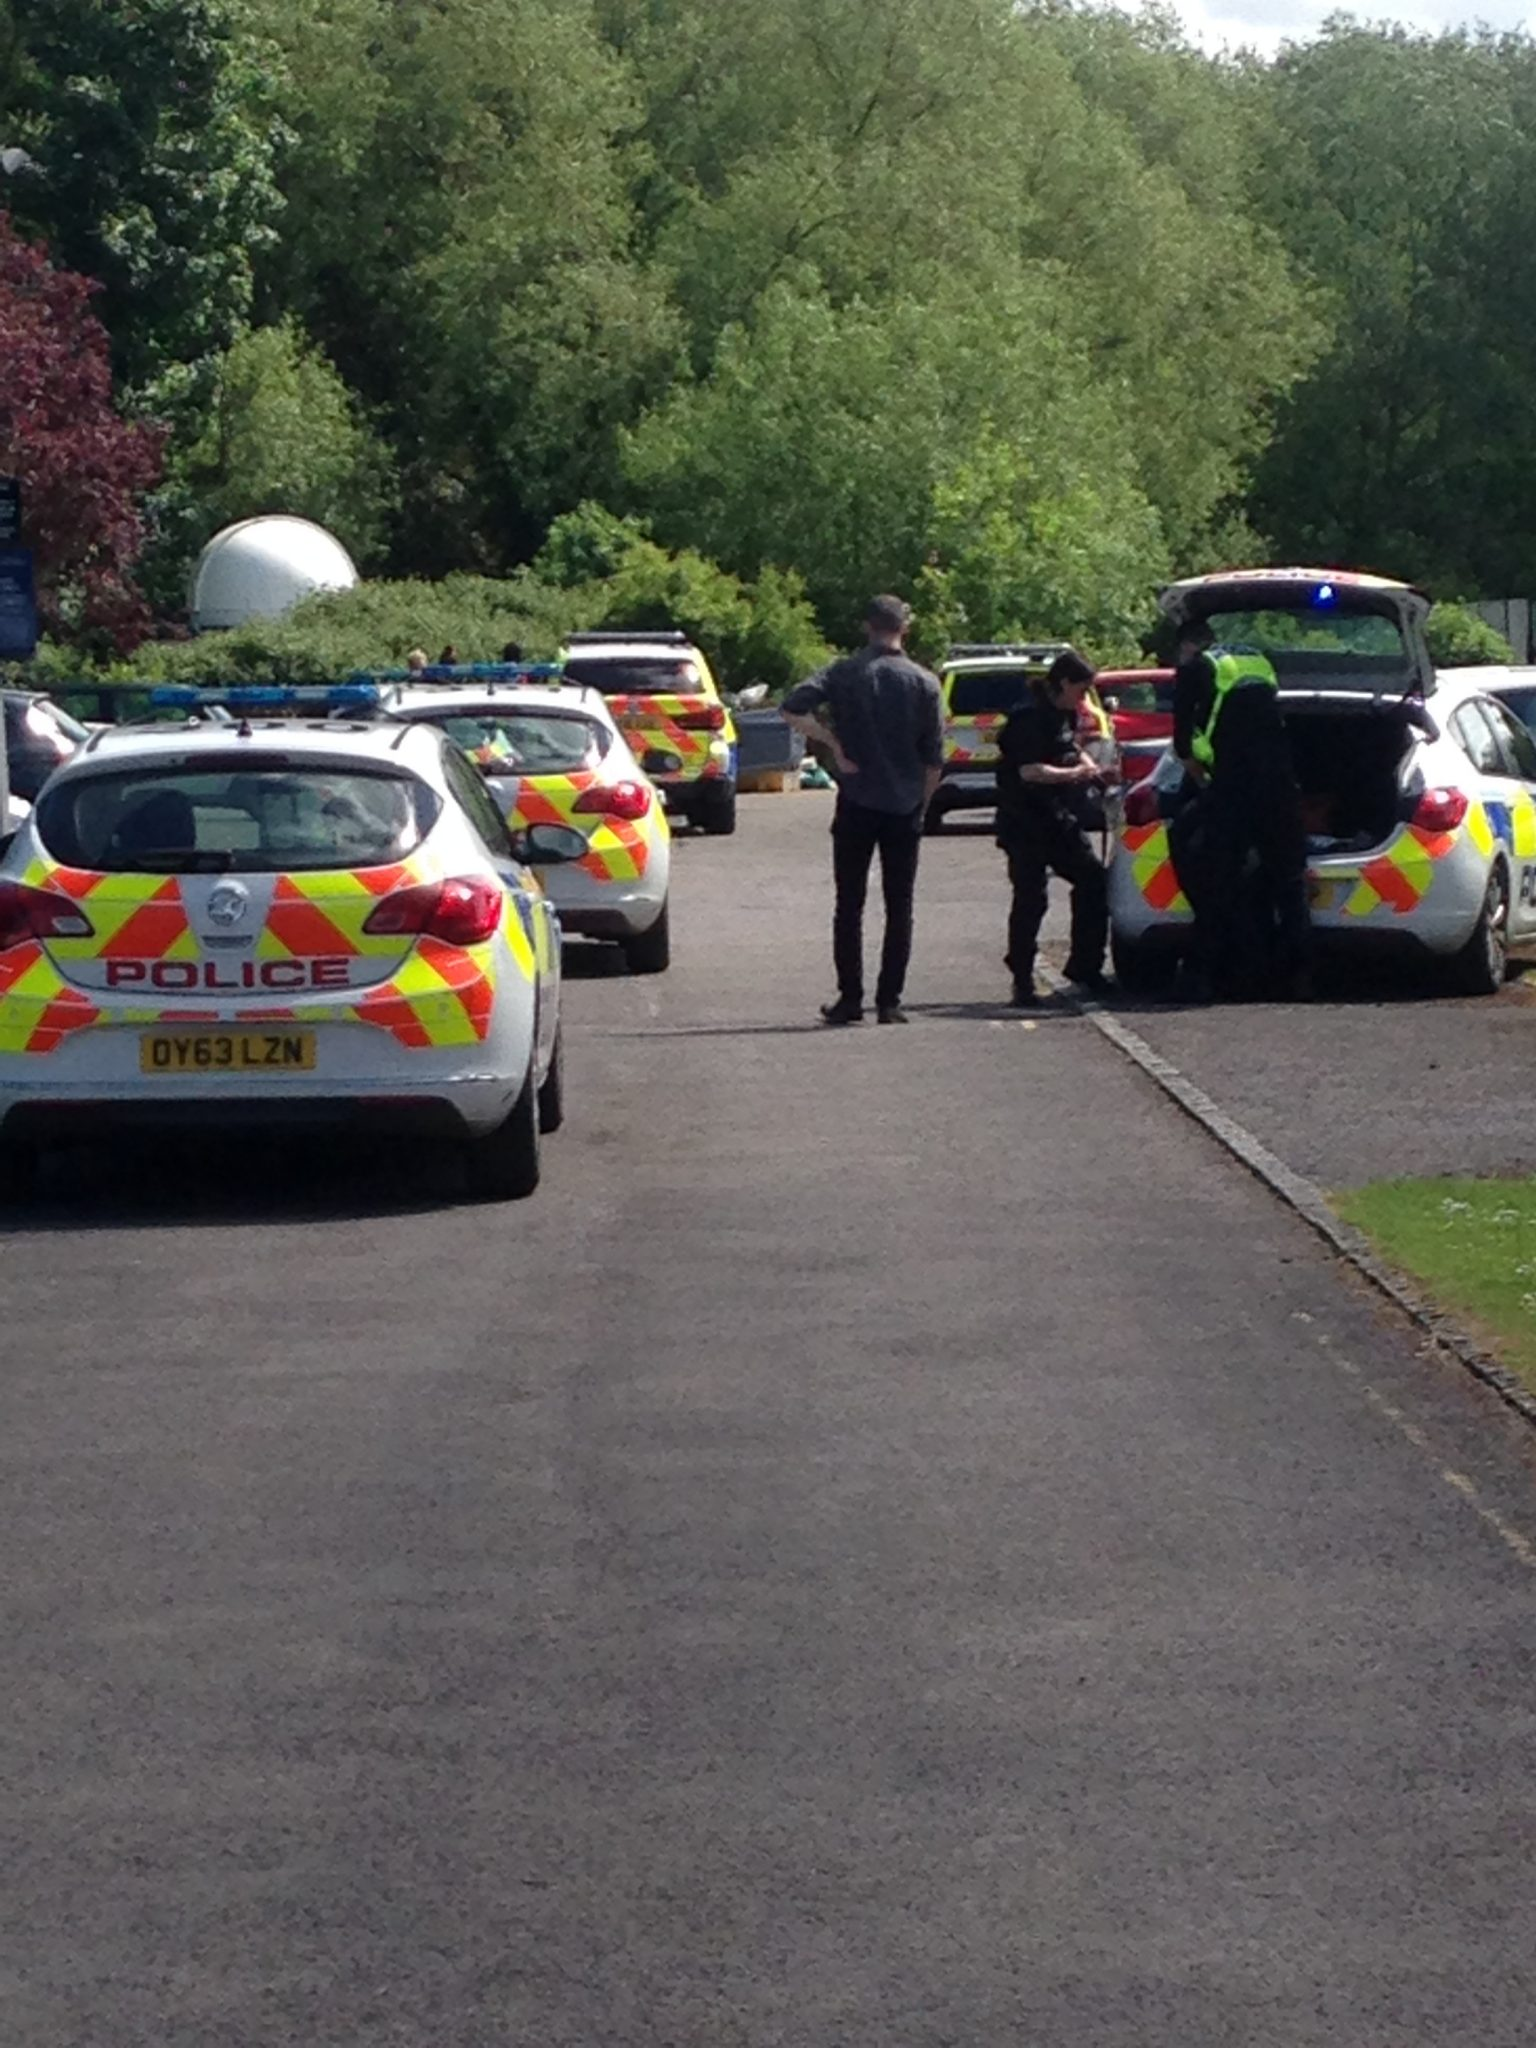 Dramatic car chase ends on Merton sports grounds